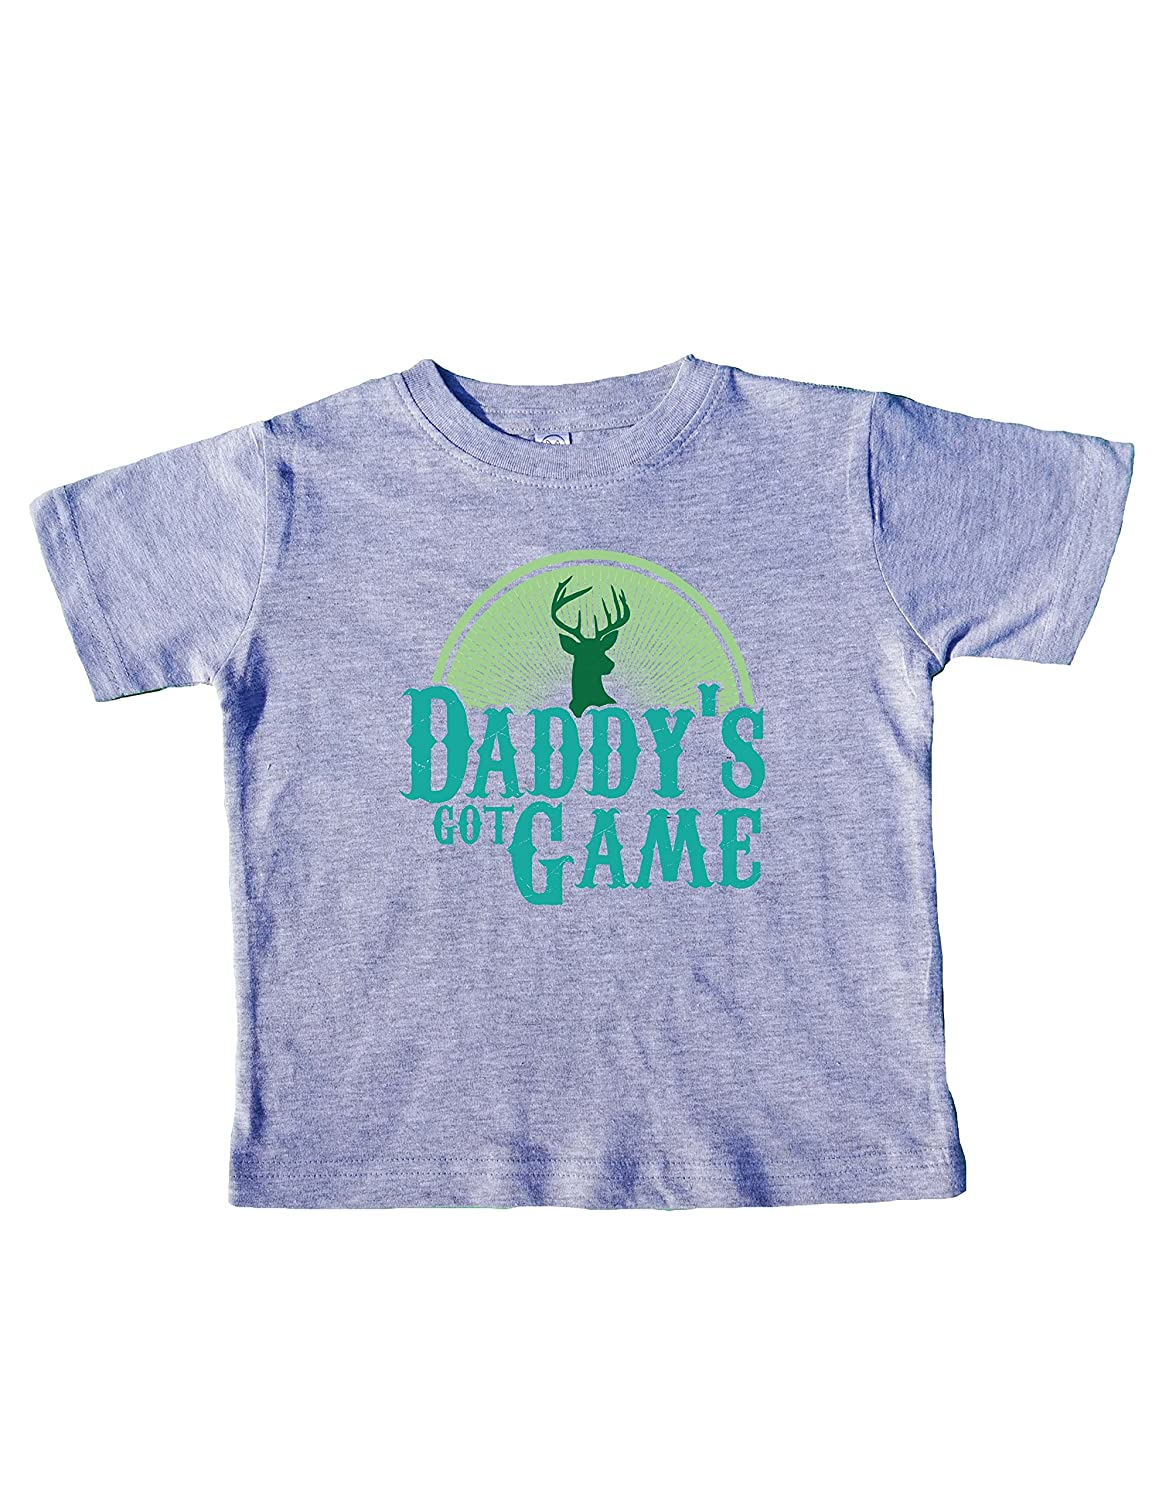 Funny Kids Toddler Shirts Daddys Got Game Royaltee Hunters Deer Collection